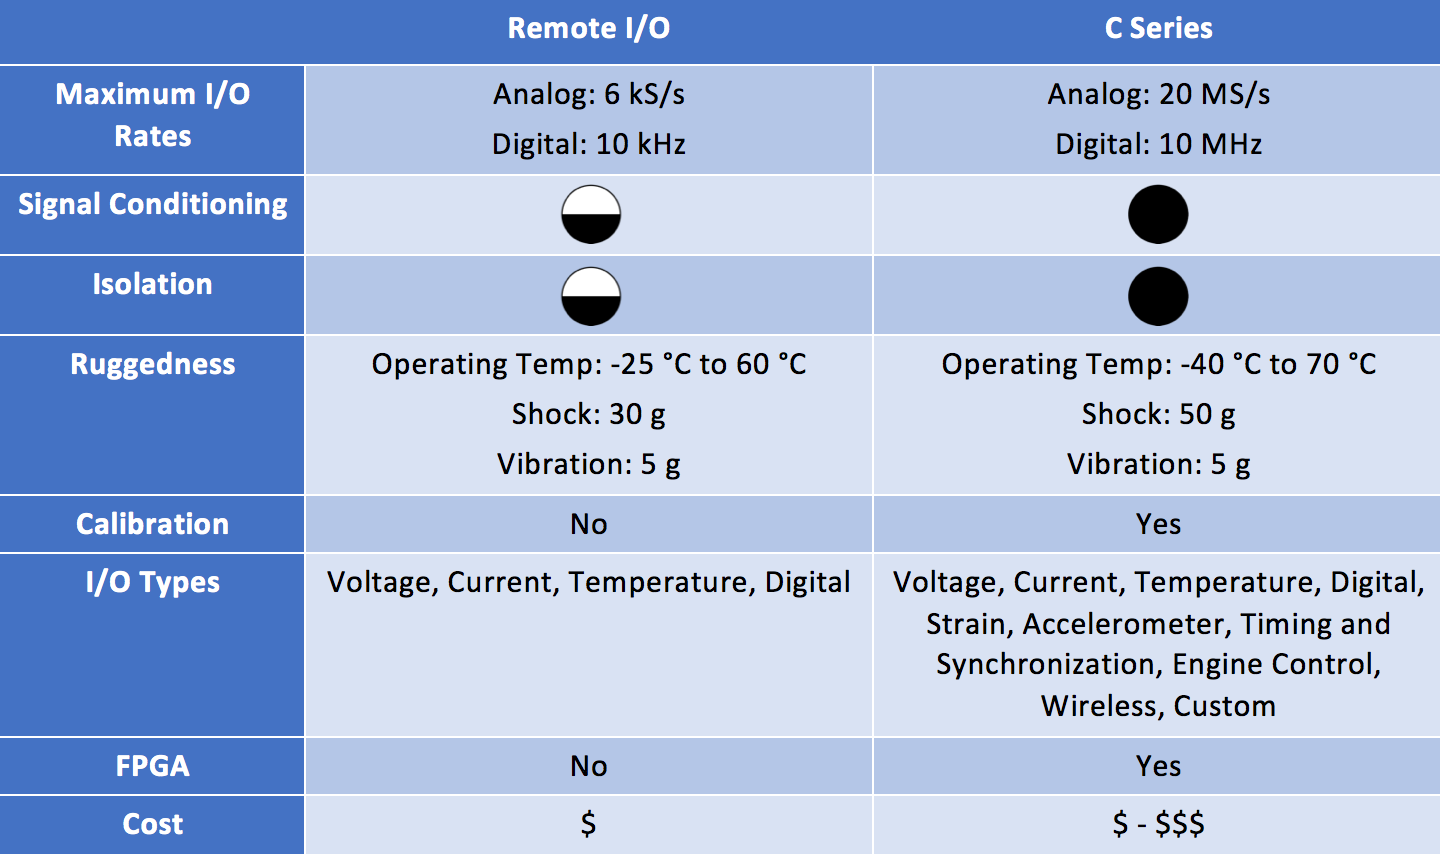 Supplement Your Control Or Measurement System With Ni Remote I O C Bus Wiring Cost The Second Category Can Be Addressed Series Modules Each Of These Options Has Its Strengths Table 1